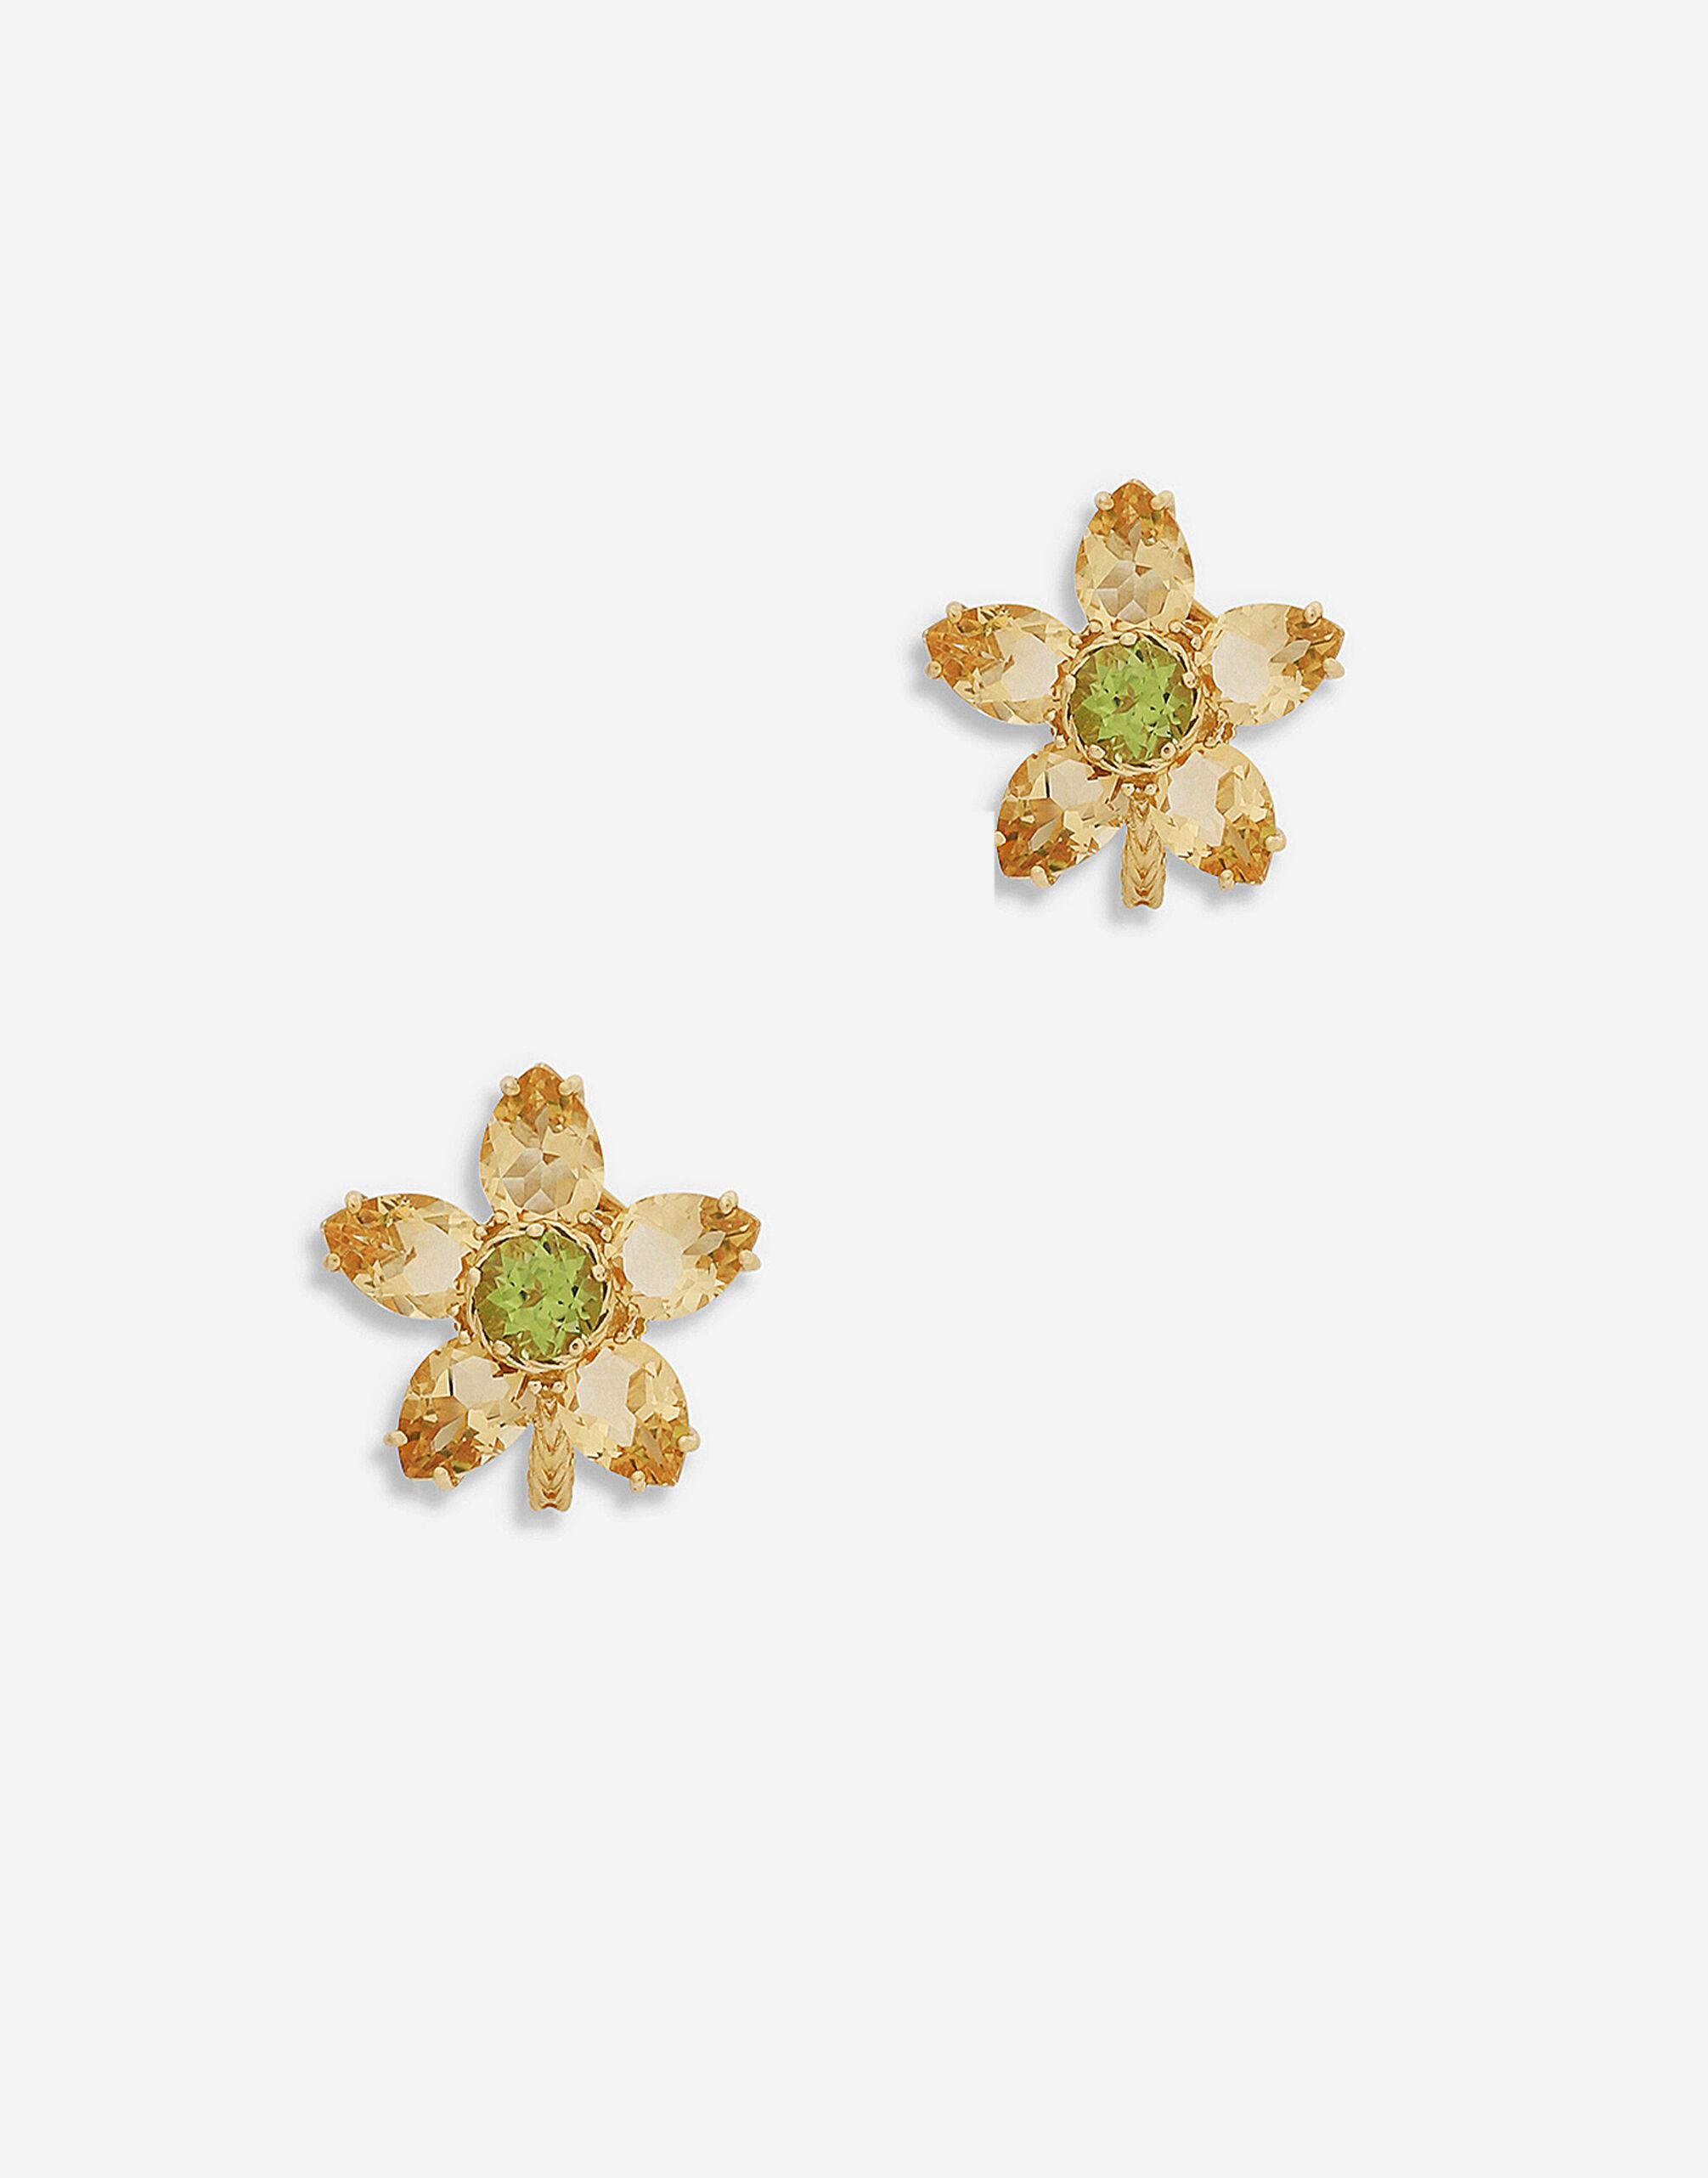 Spring earrings in yellow 18kt gold with citrine flower motif